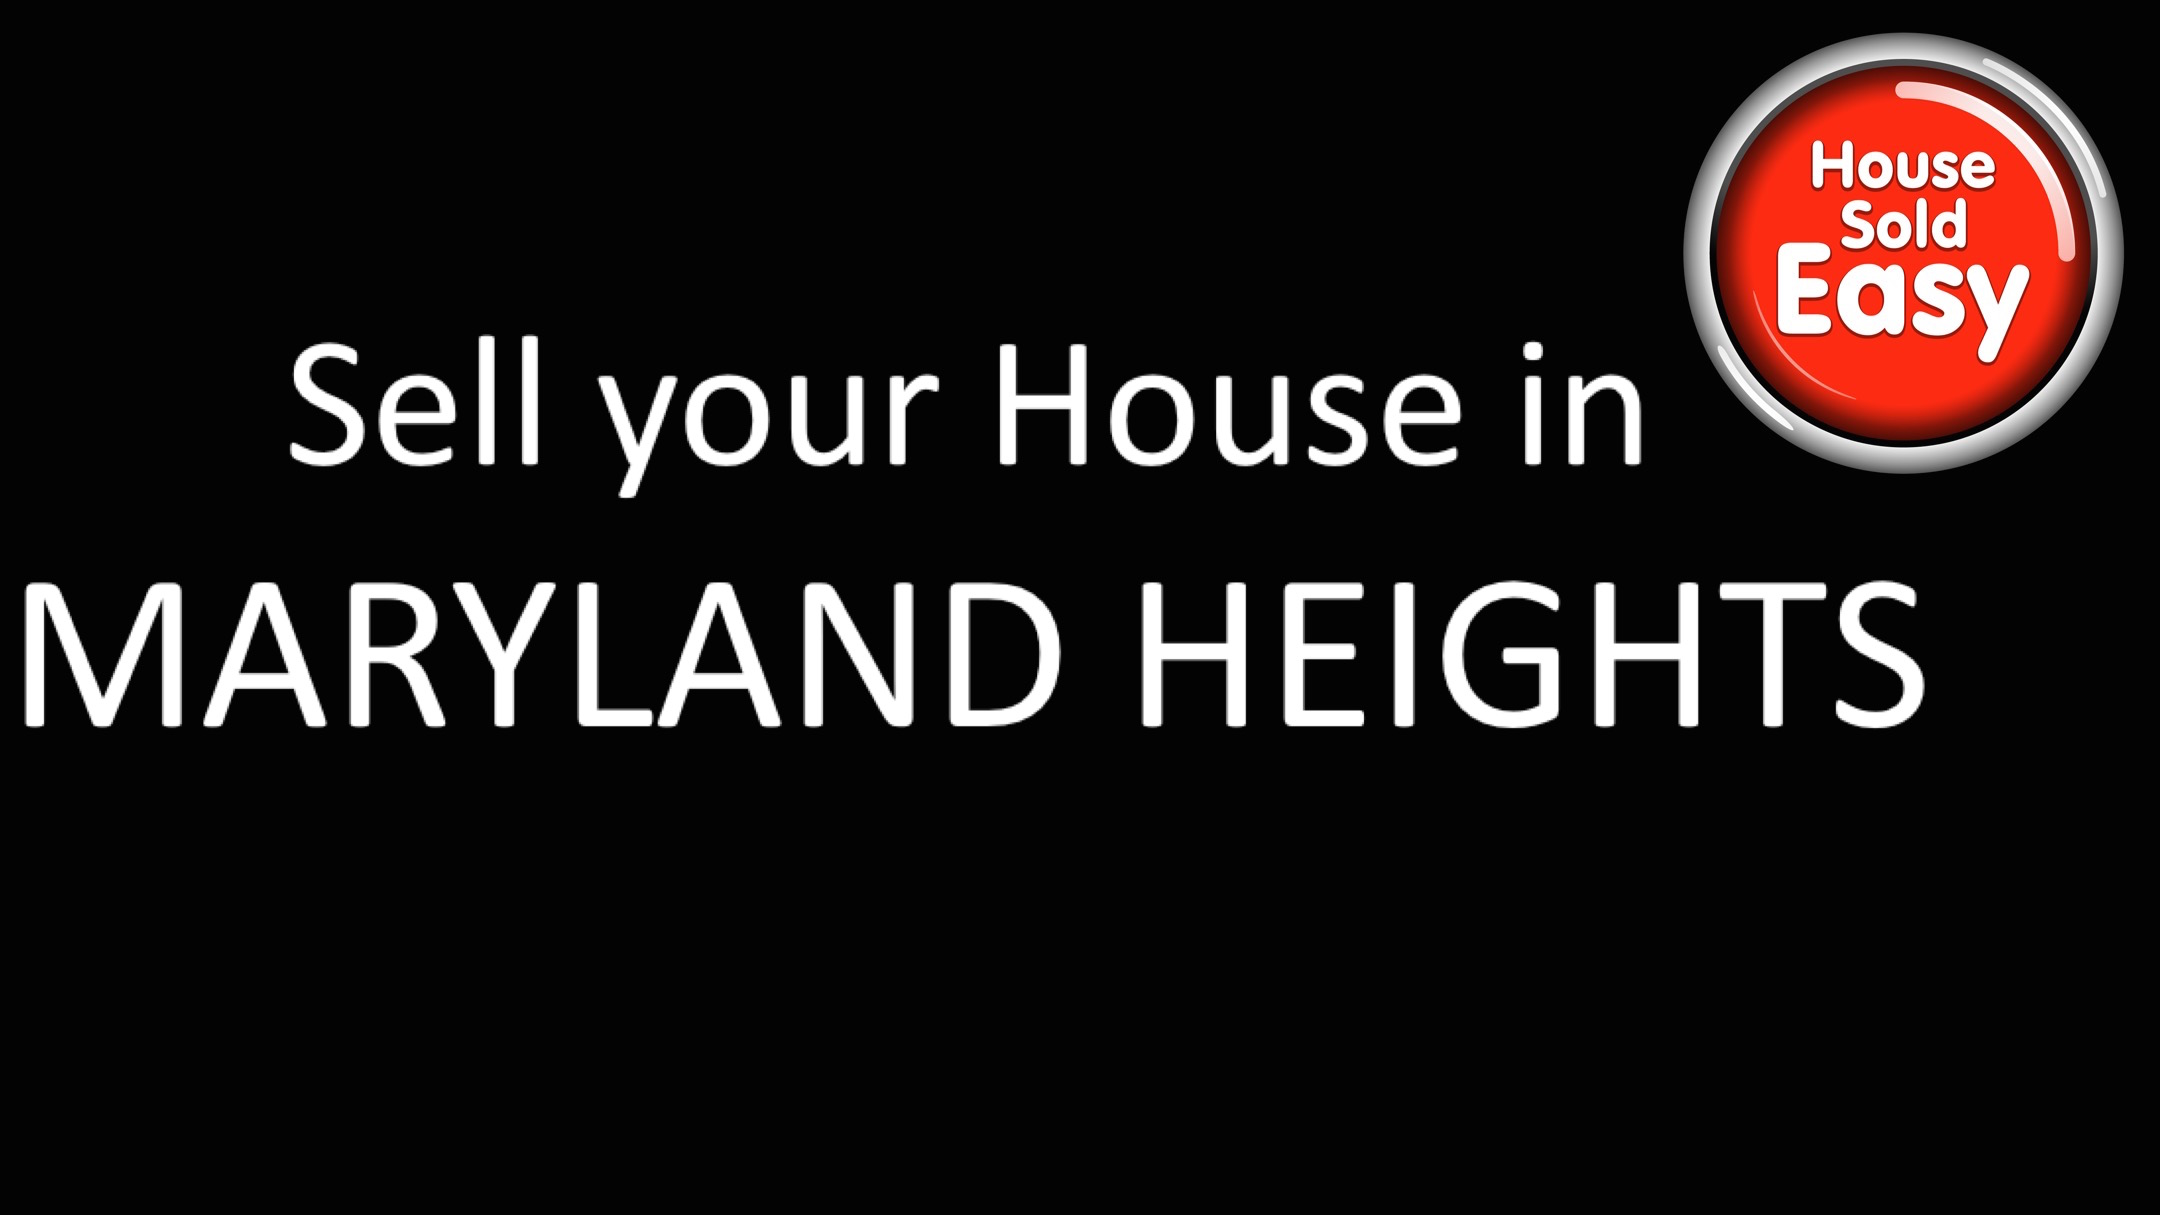 Sell House Fast Maryland Heights